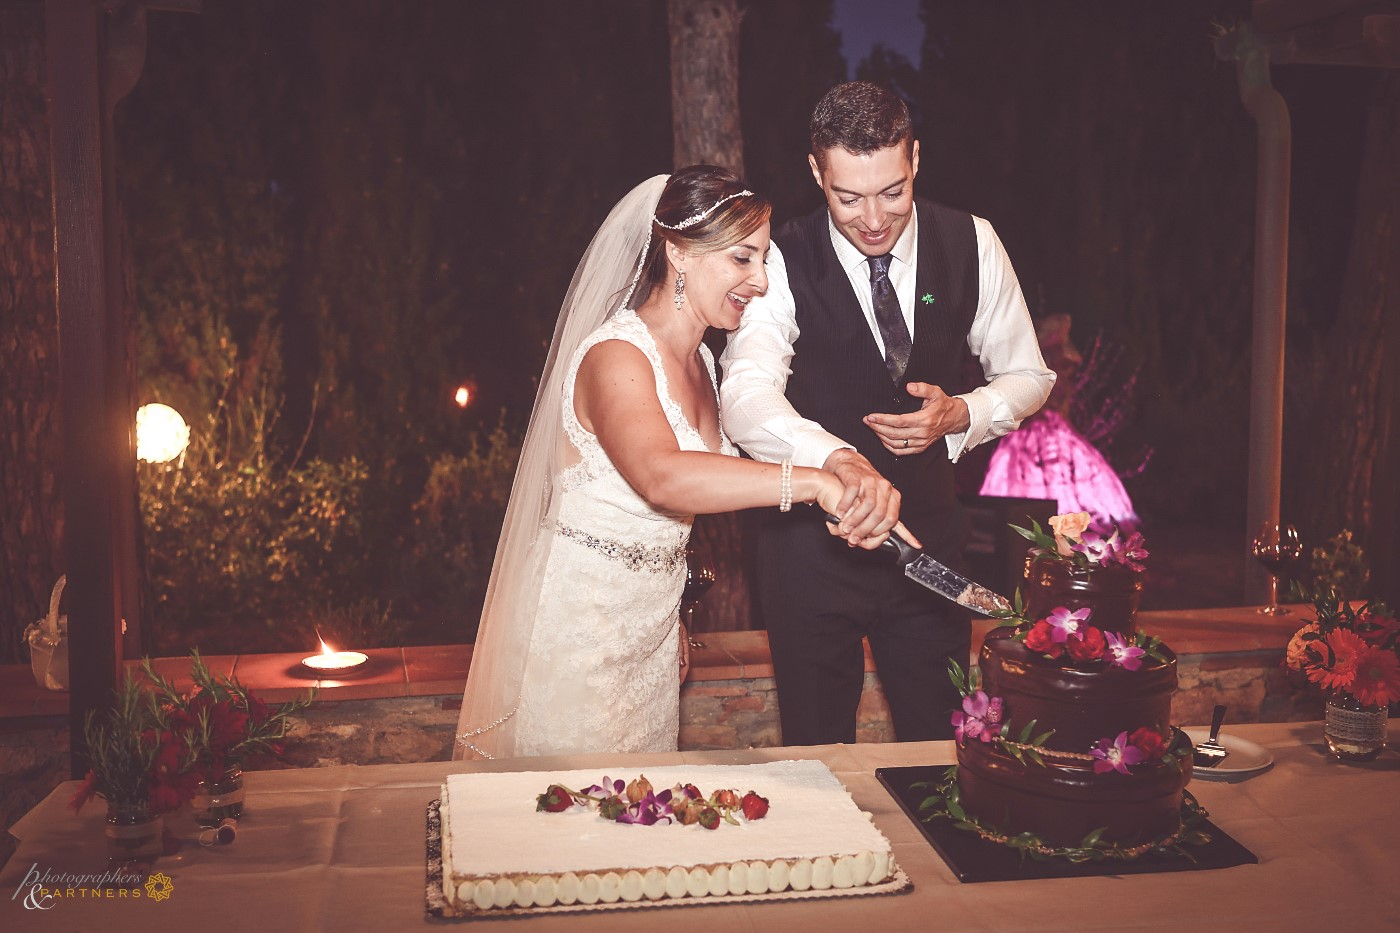 Cutting of two wedding cakes 🍰 🍰